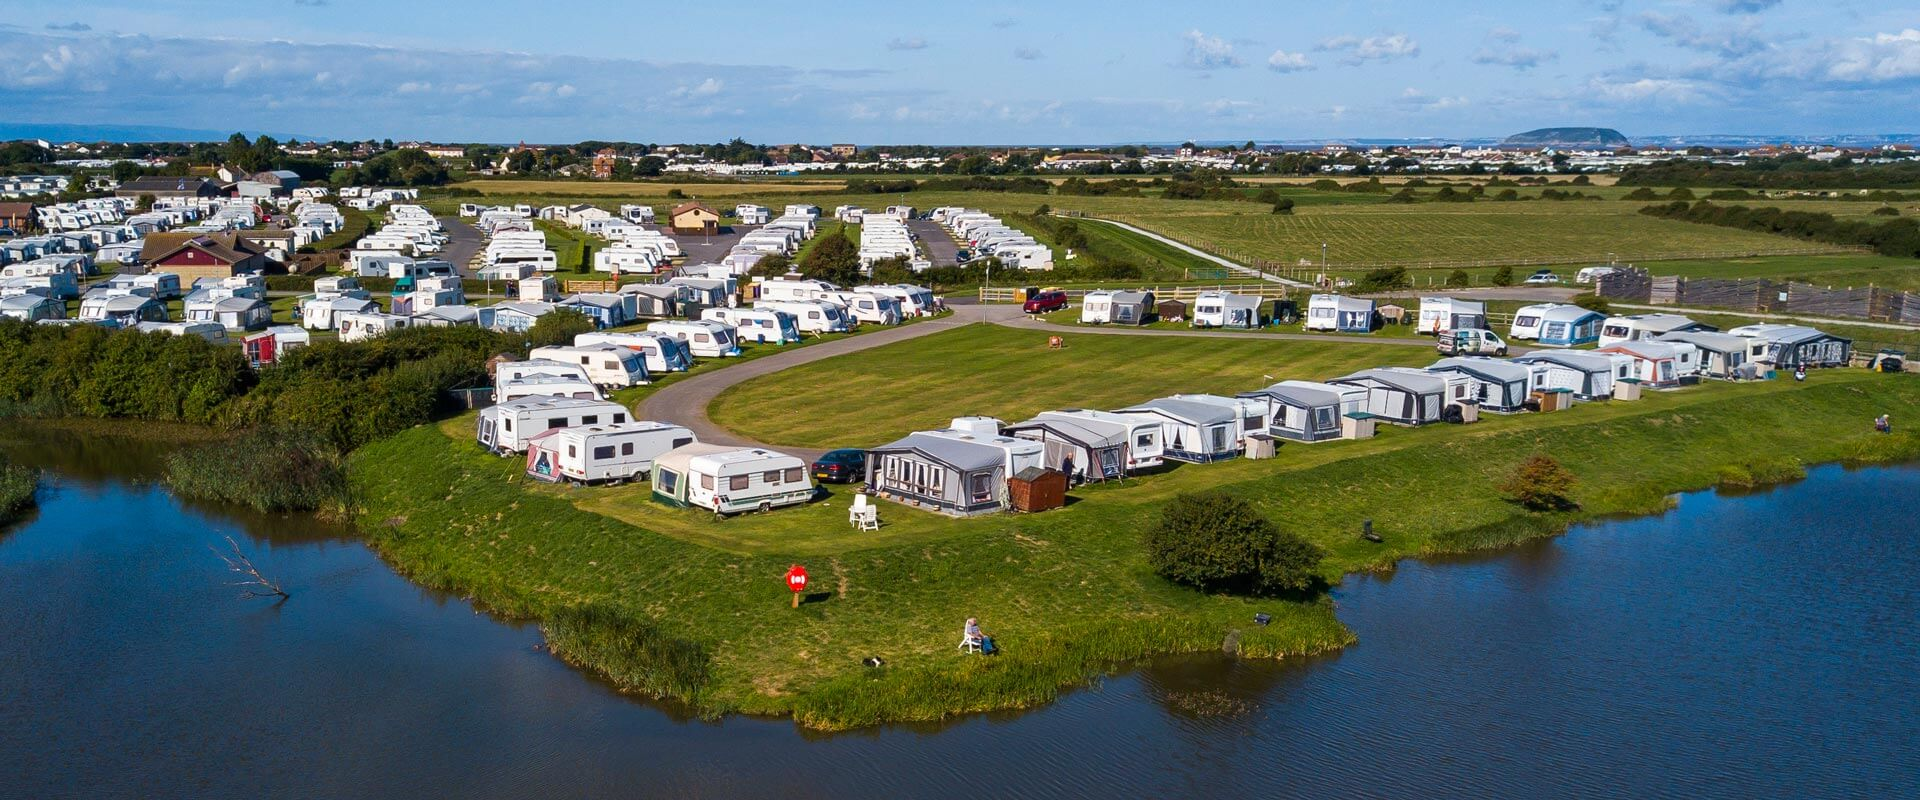 Diamond-Farm-Caravan-camping-holidays